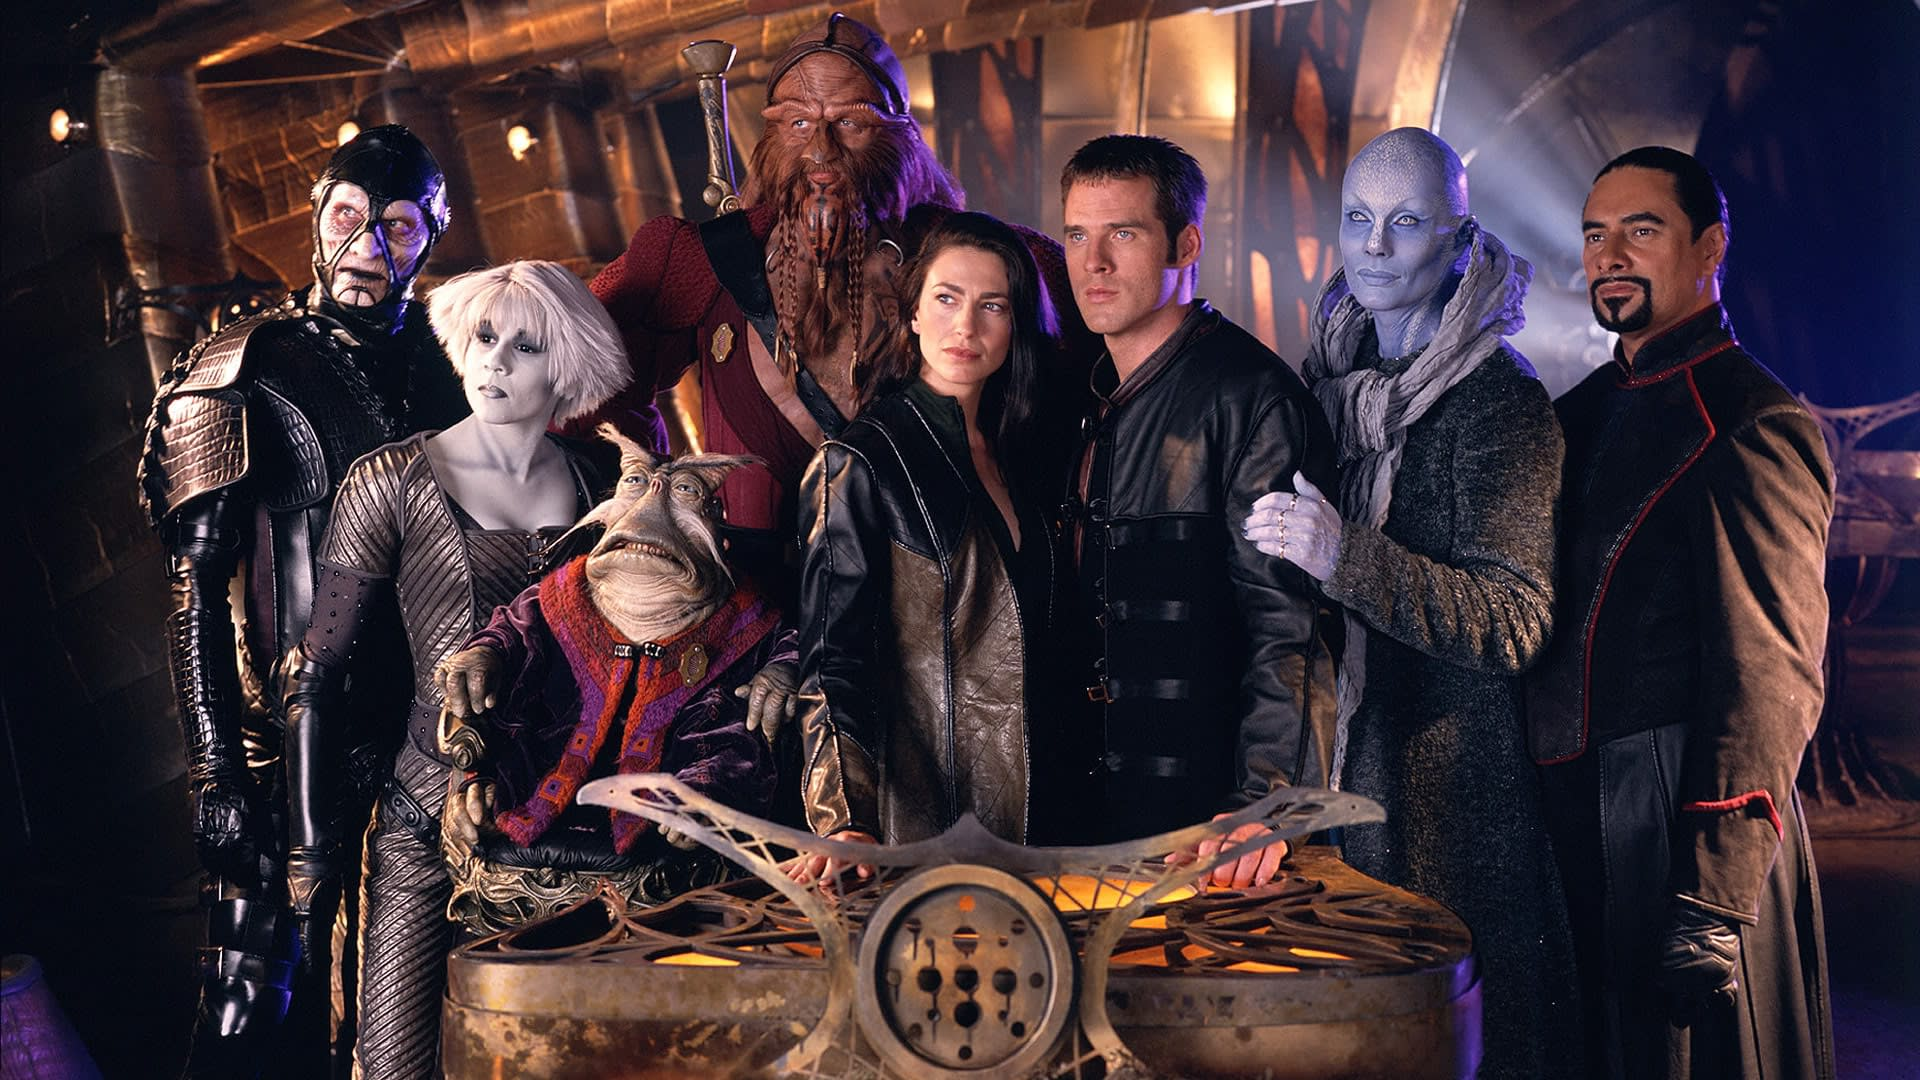 """""""Farscape"""": Director James Gunn On How Cult Fav Sci-Fi Series Was Major """"Guardians of the Galaxy"""" Influence"""